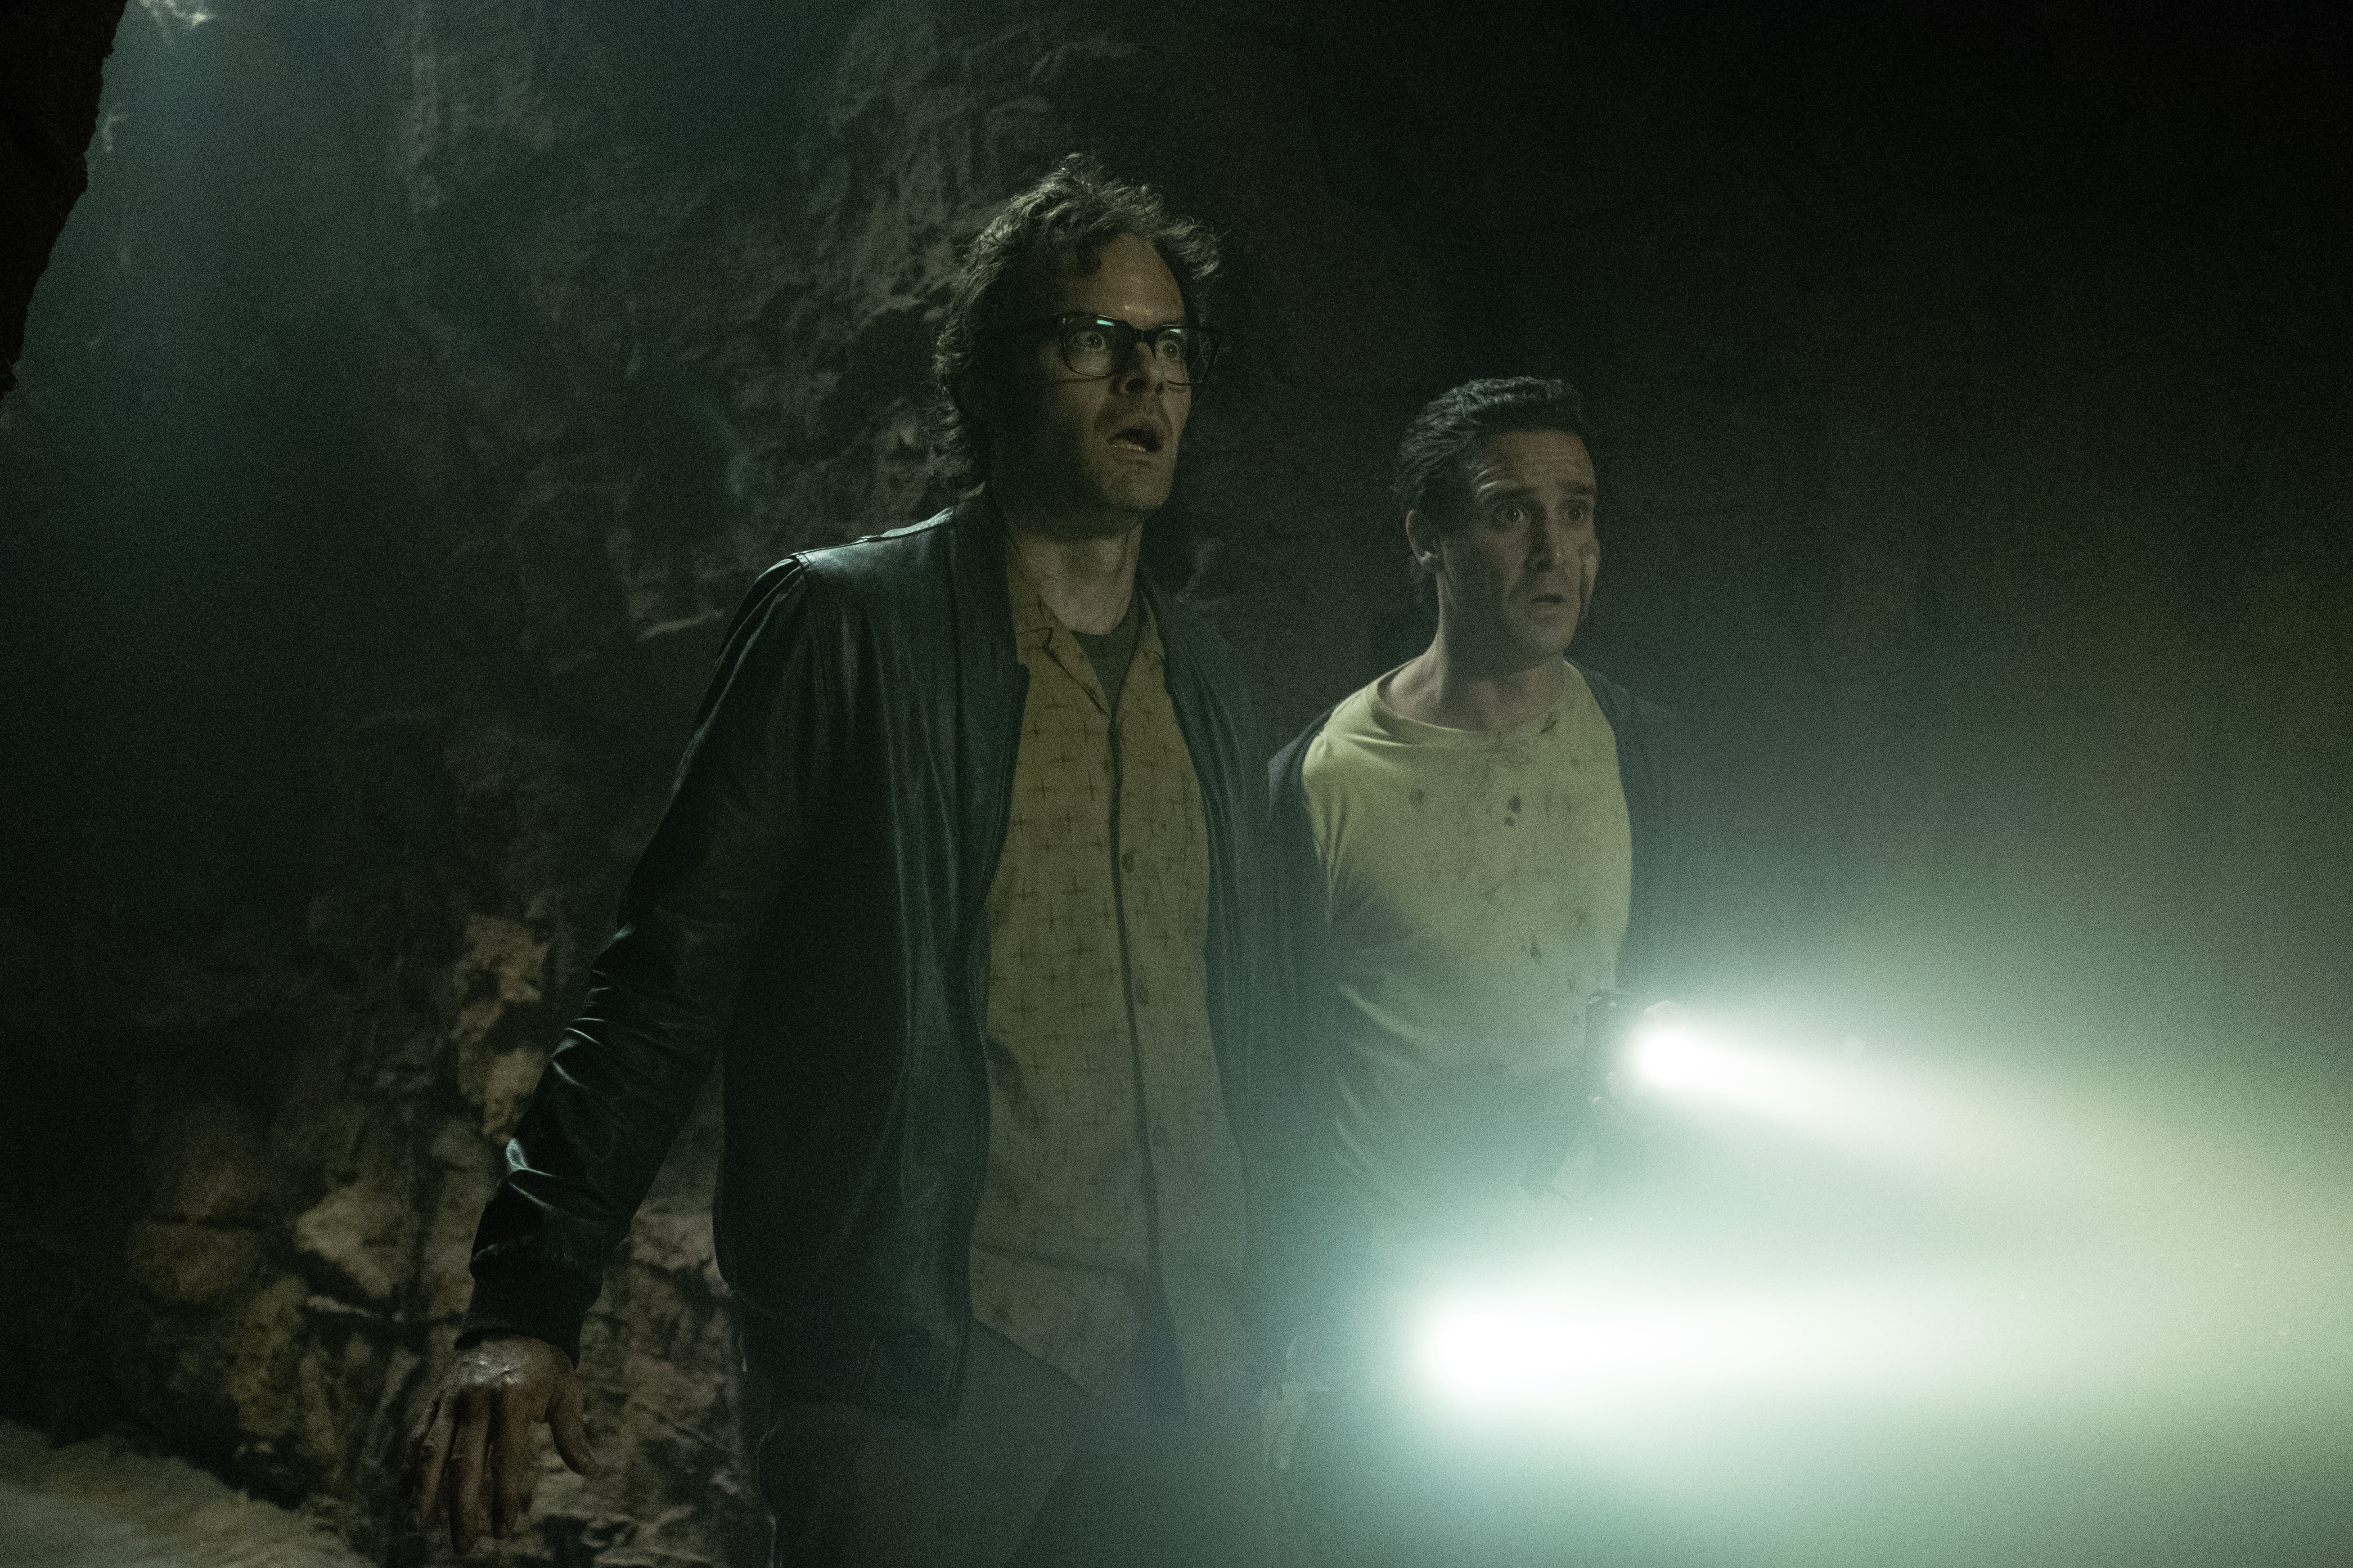 (L-r) Bill Hader as Richie Tozier and James Ransone as Eddie Kaspbrak in 'It Chapter Two'